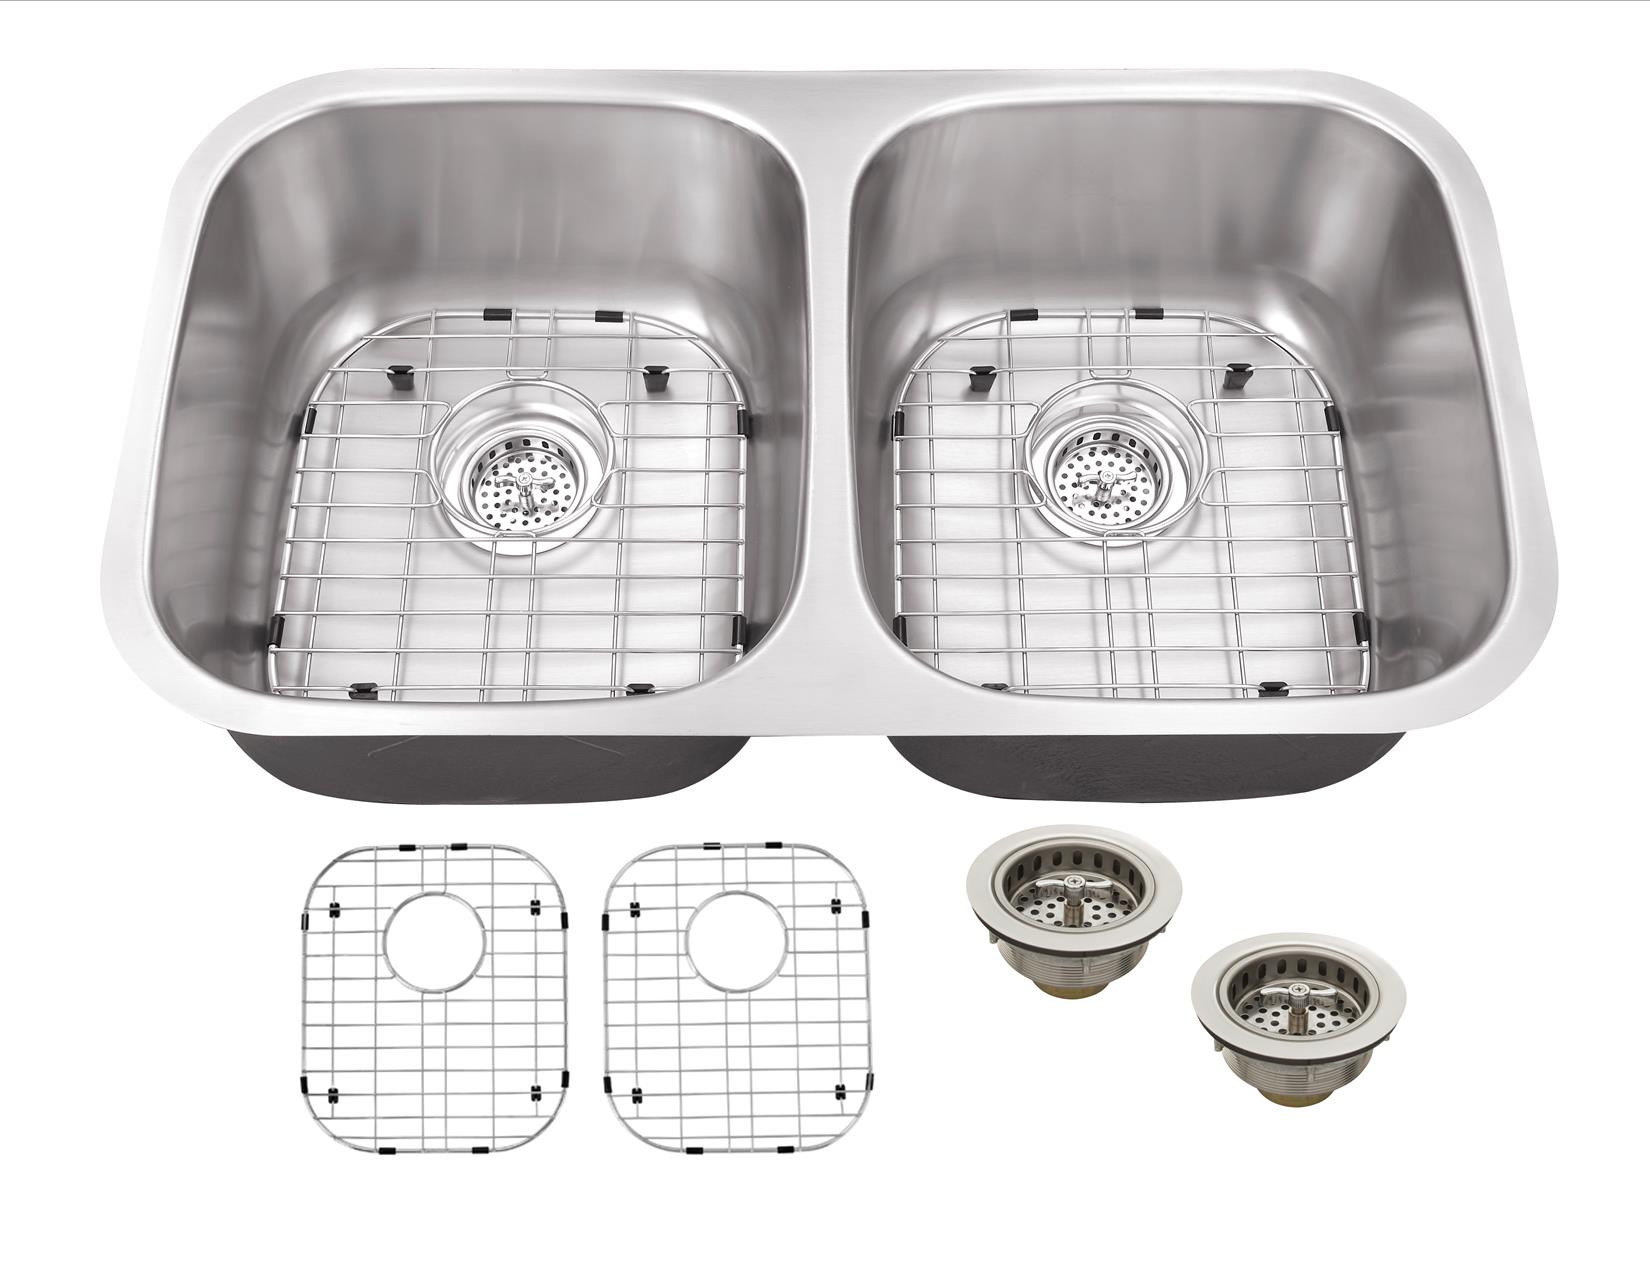 Cahaba CA122132 18 Gauge Double Bowl Kitchen Sink With Grid Sets and Drain